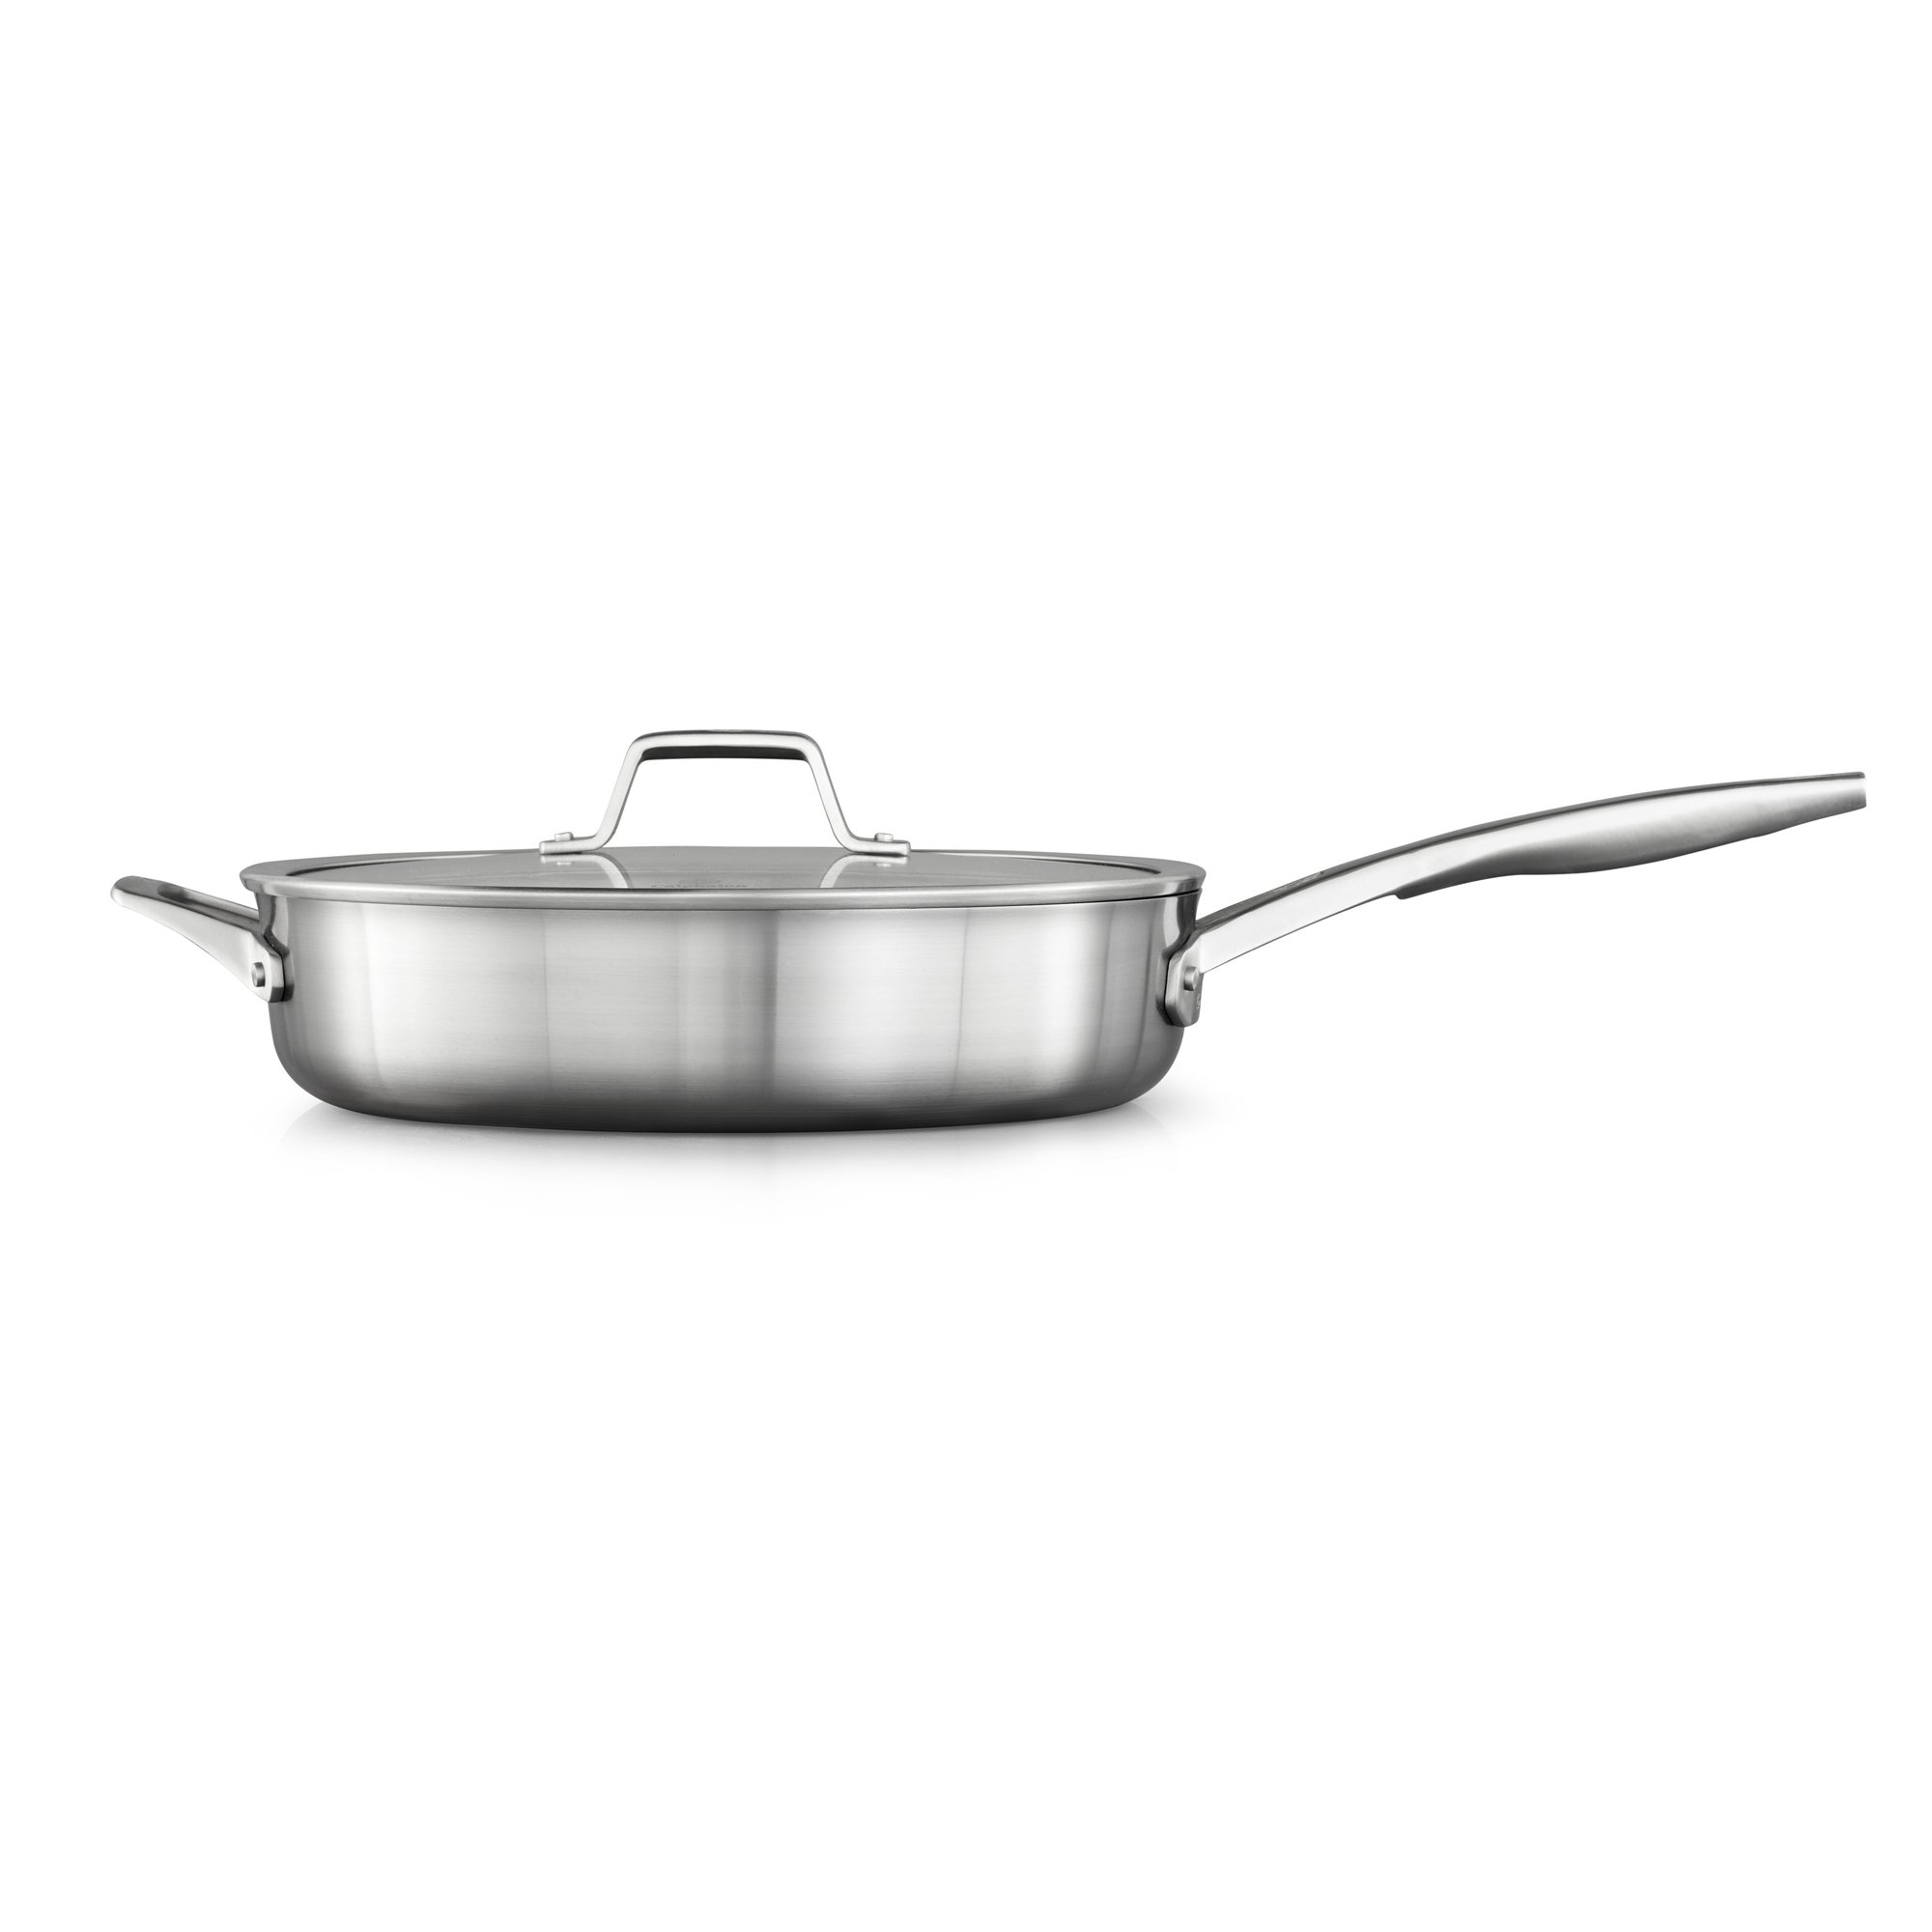 Calphalon Premier Stainless Steel 5-Quart Saute Pan with Cover